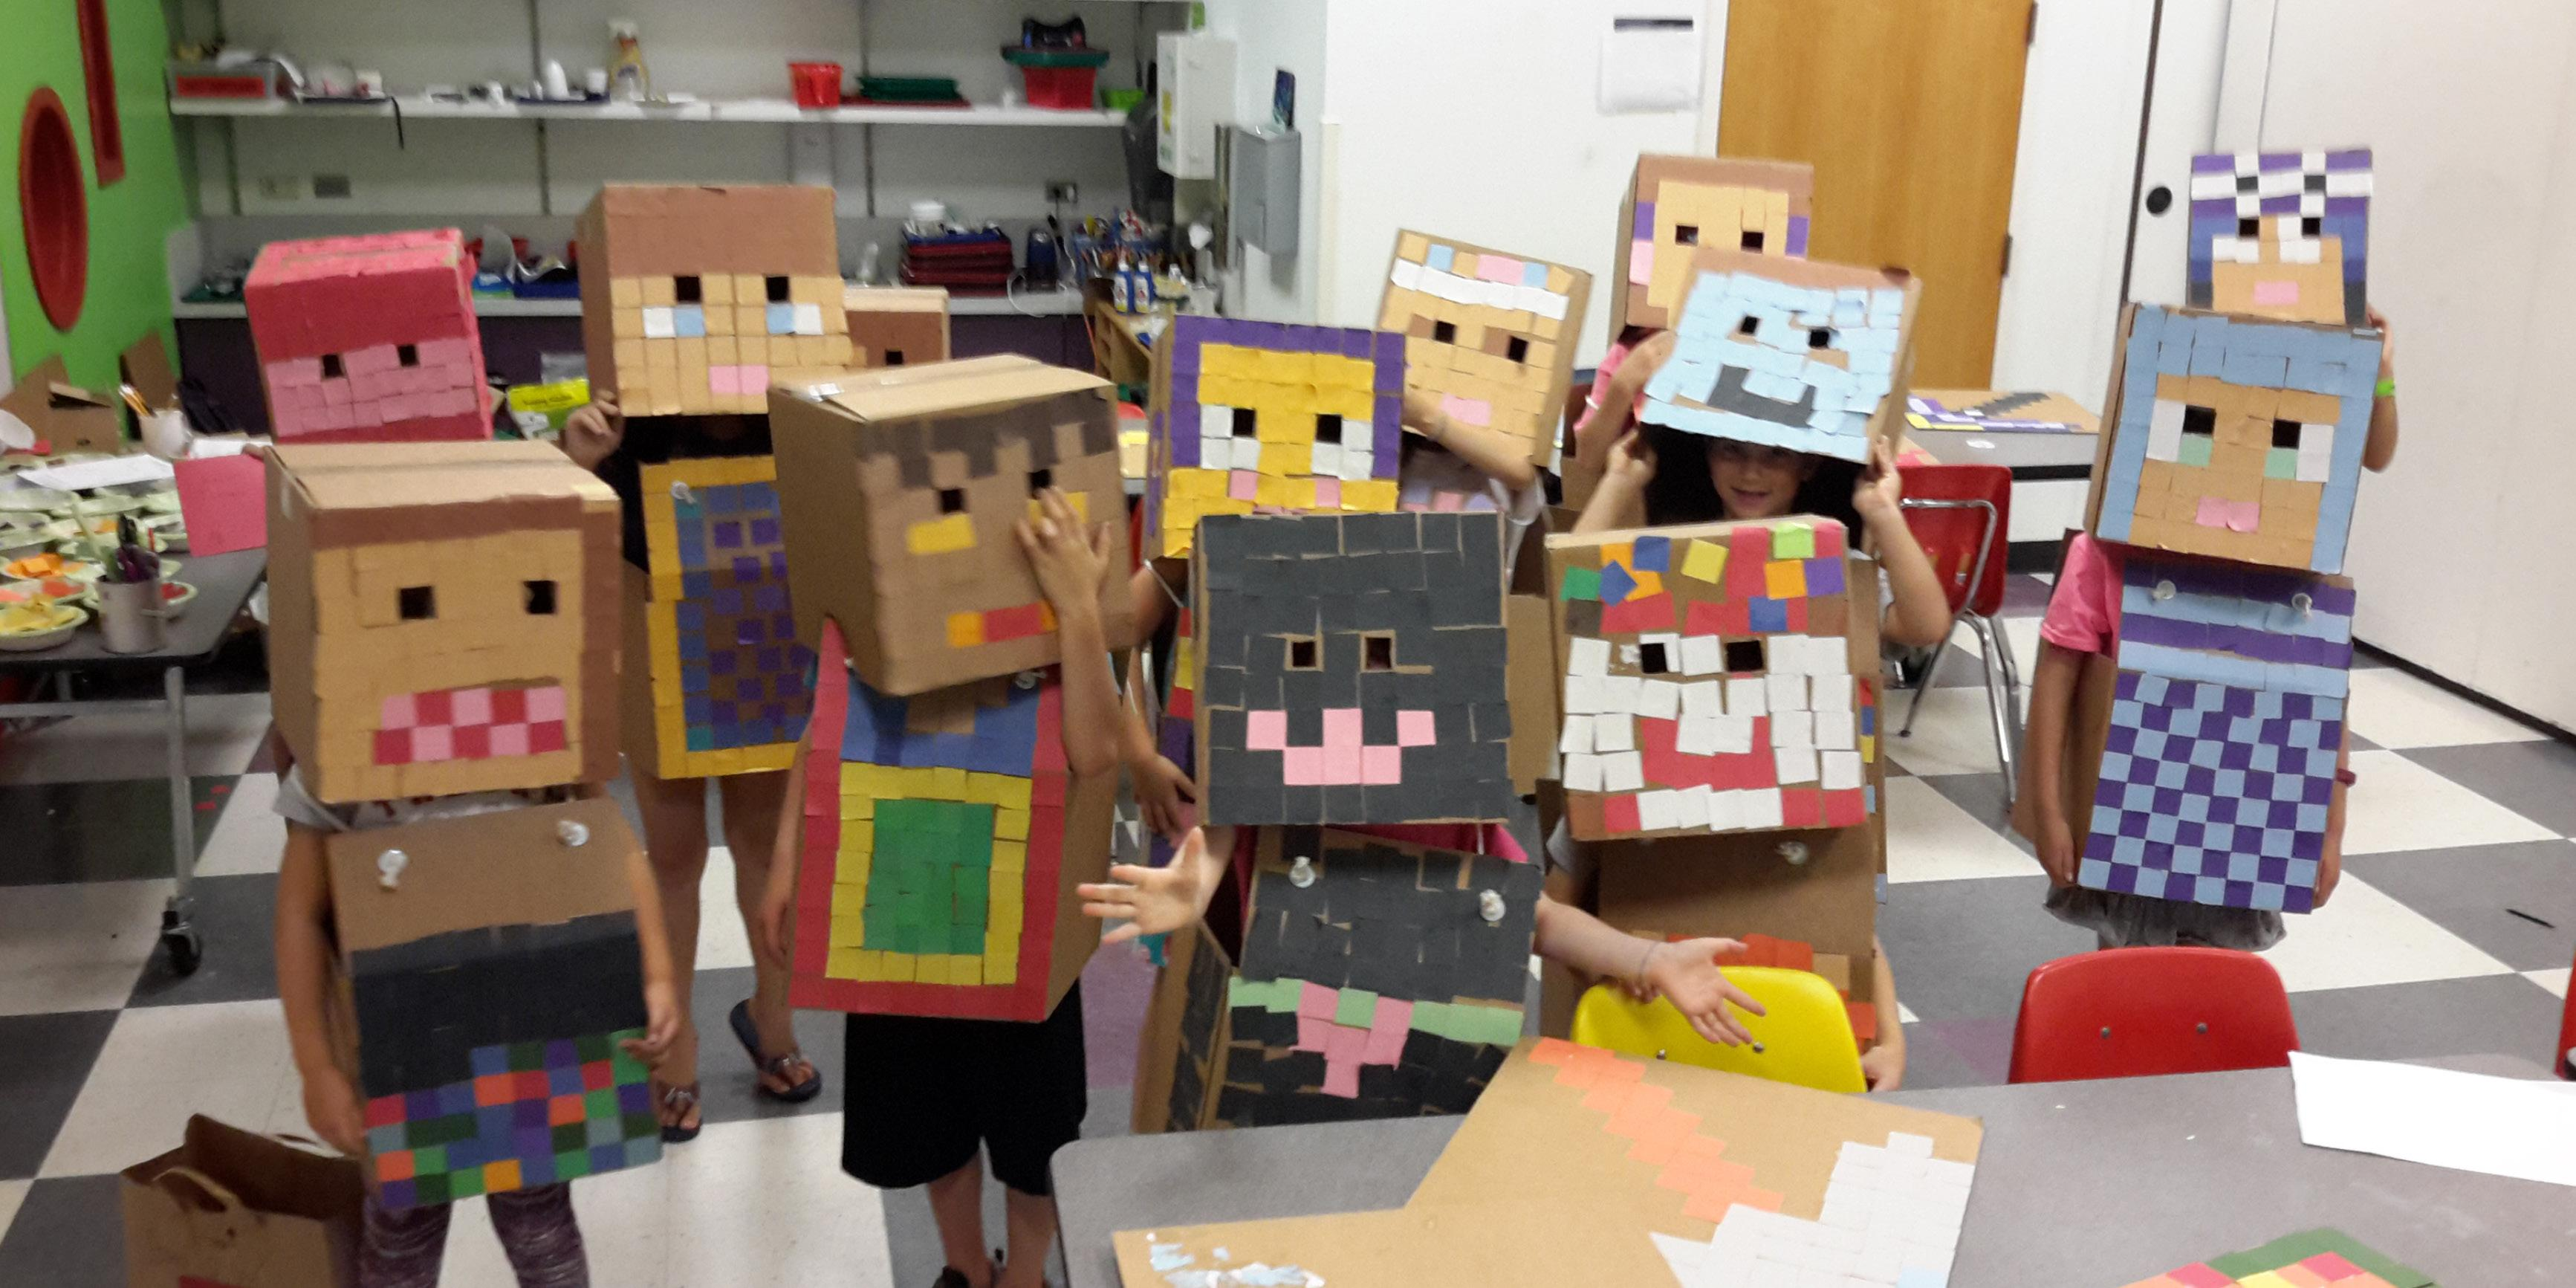 Kids dressed up as Minecraft characters for summer camps.